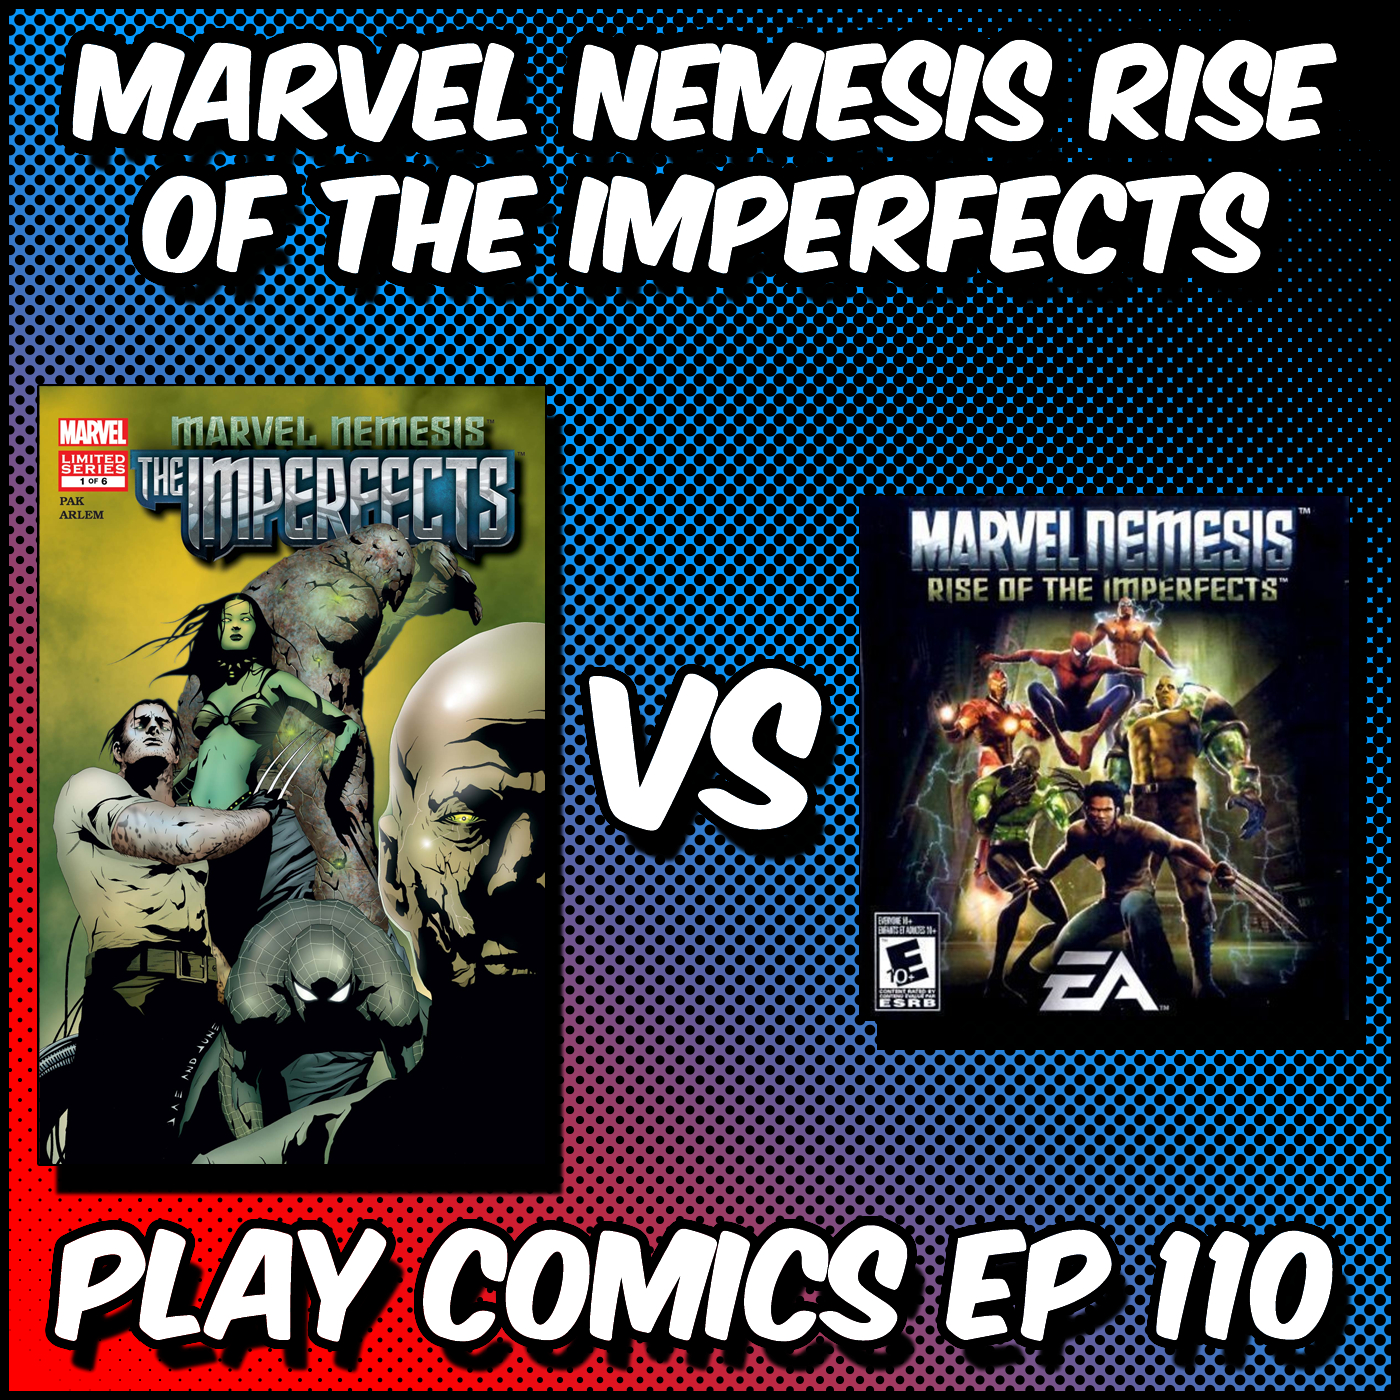 Marvel Nemesis Rise of the Imperfects with Robert Secundus (Comics XF)